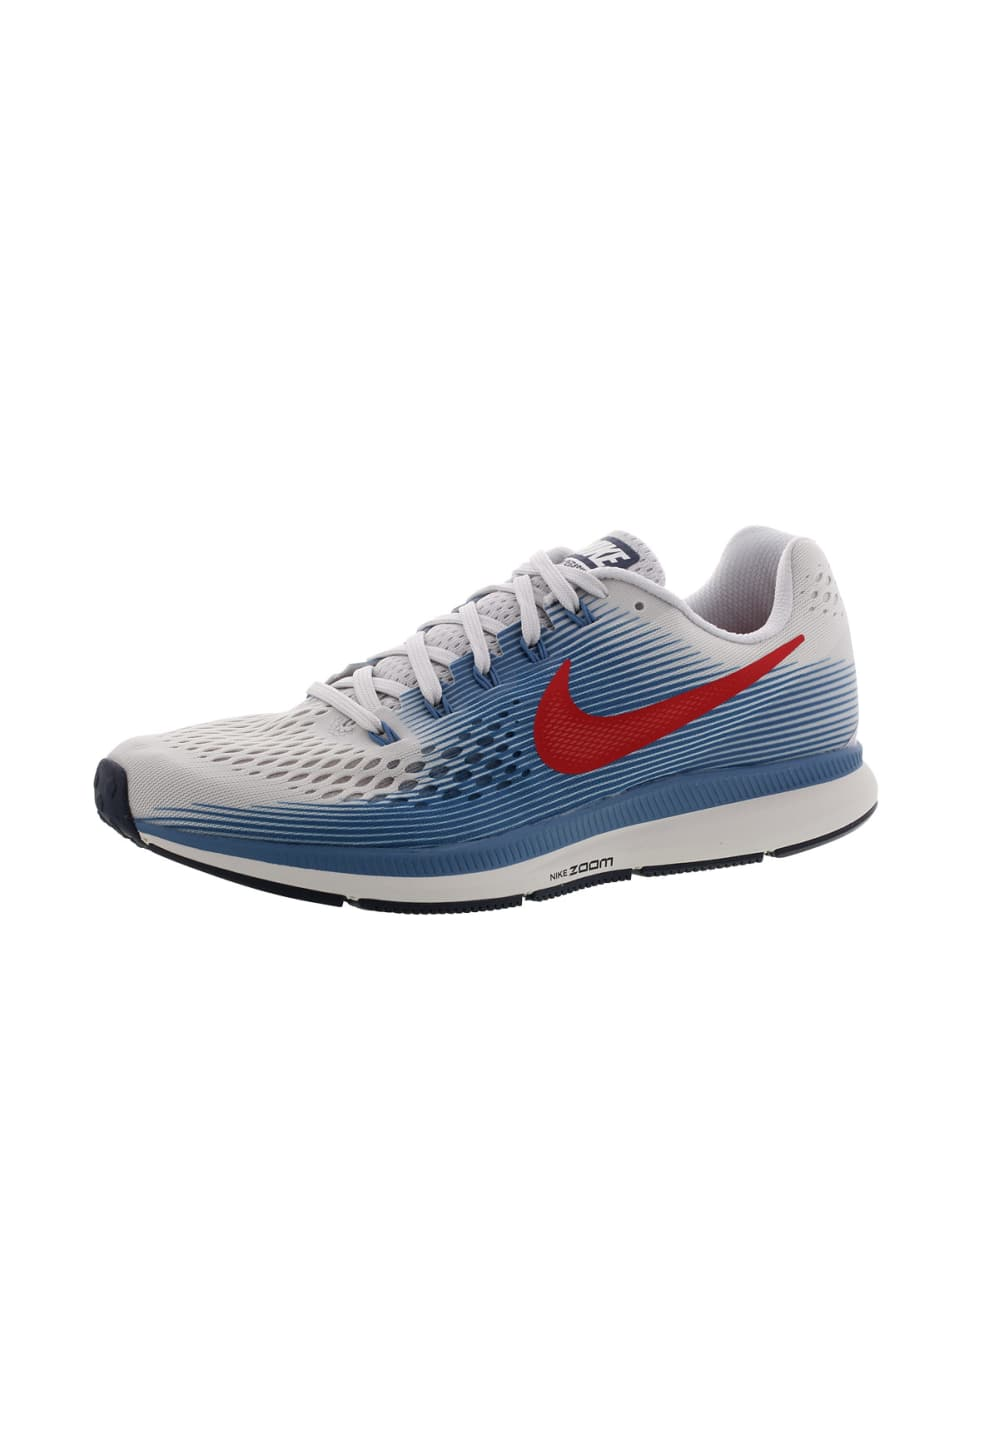 low priced 60afe 8295a Nike Air Zoom Pegasus 34 - Running shoes for Men - White